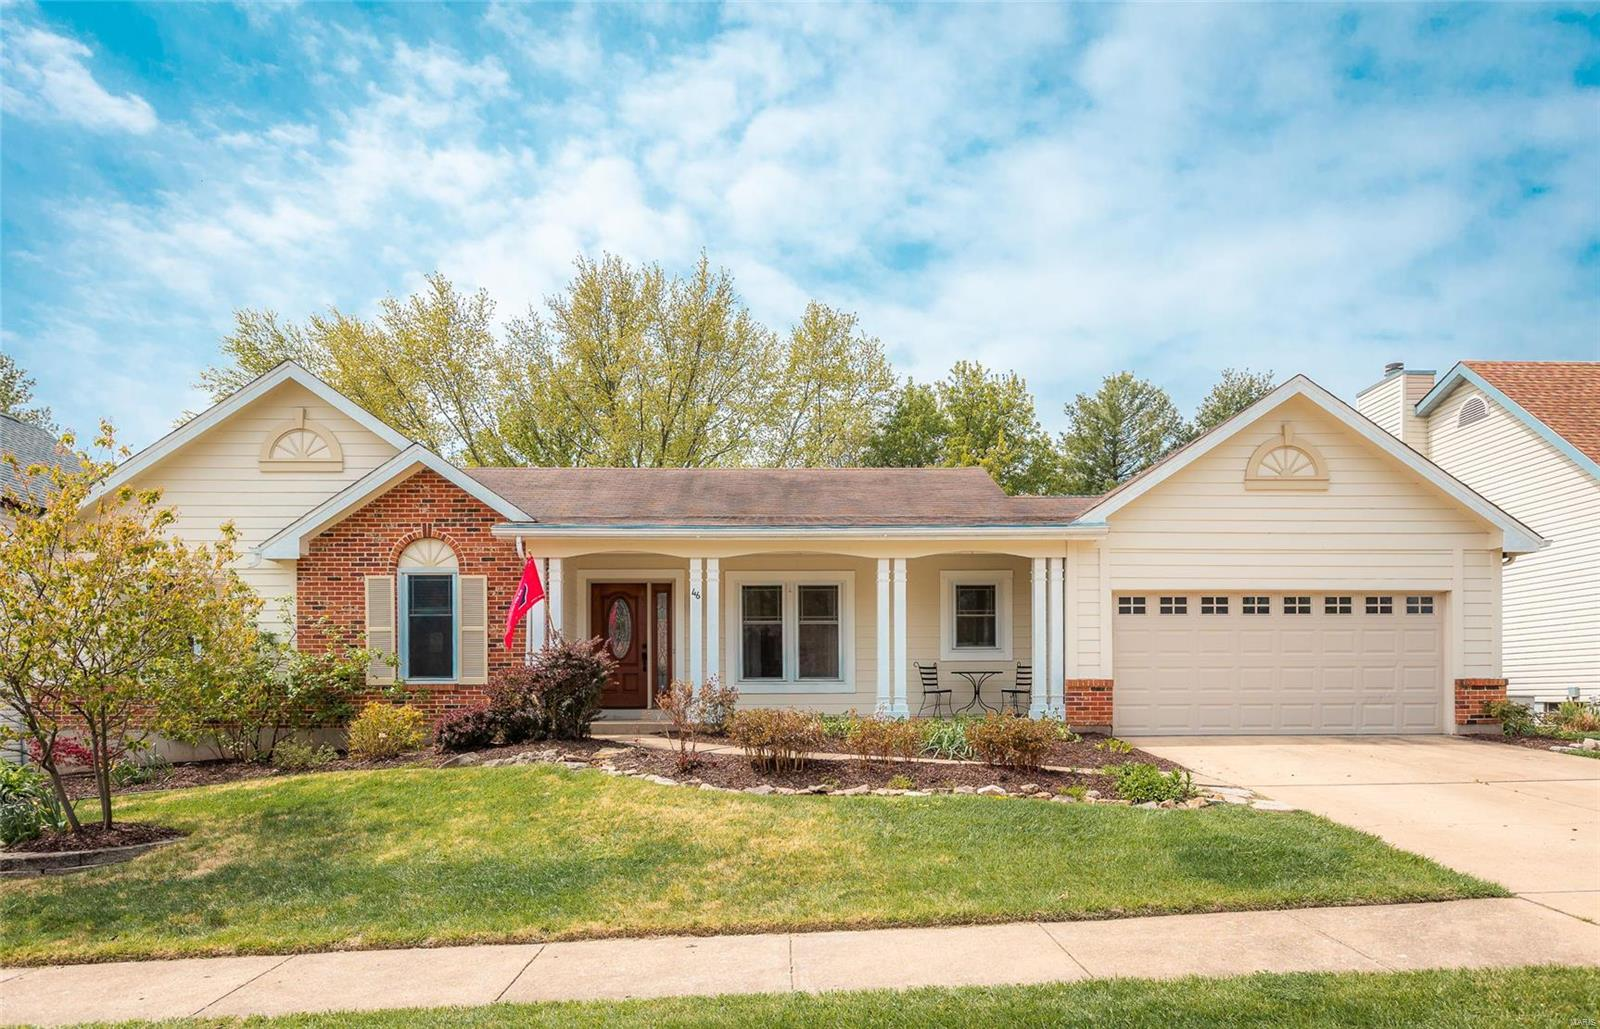 46 Meditation Way Property Photo - Florissant, MO real estate listing